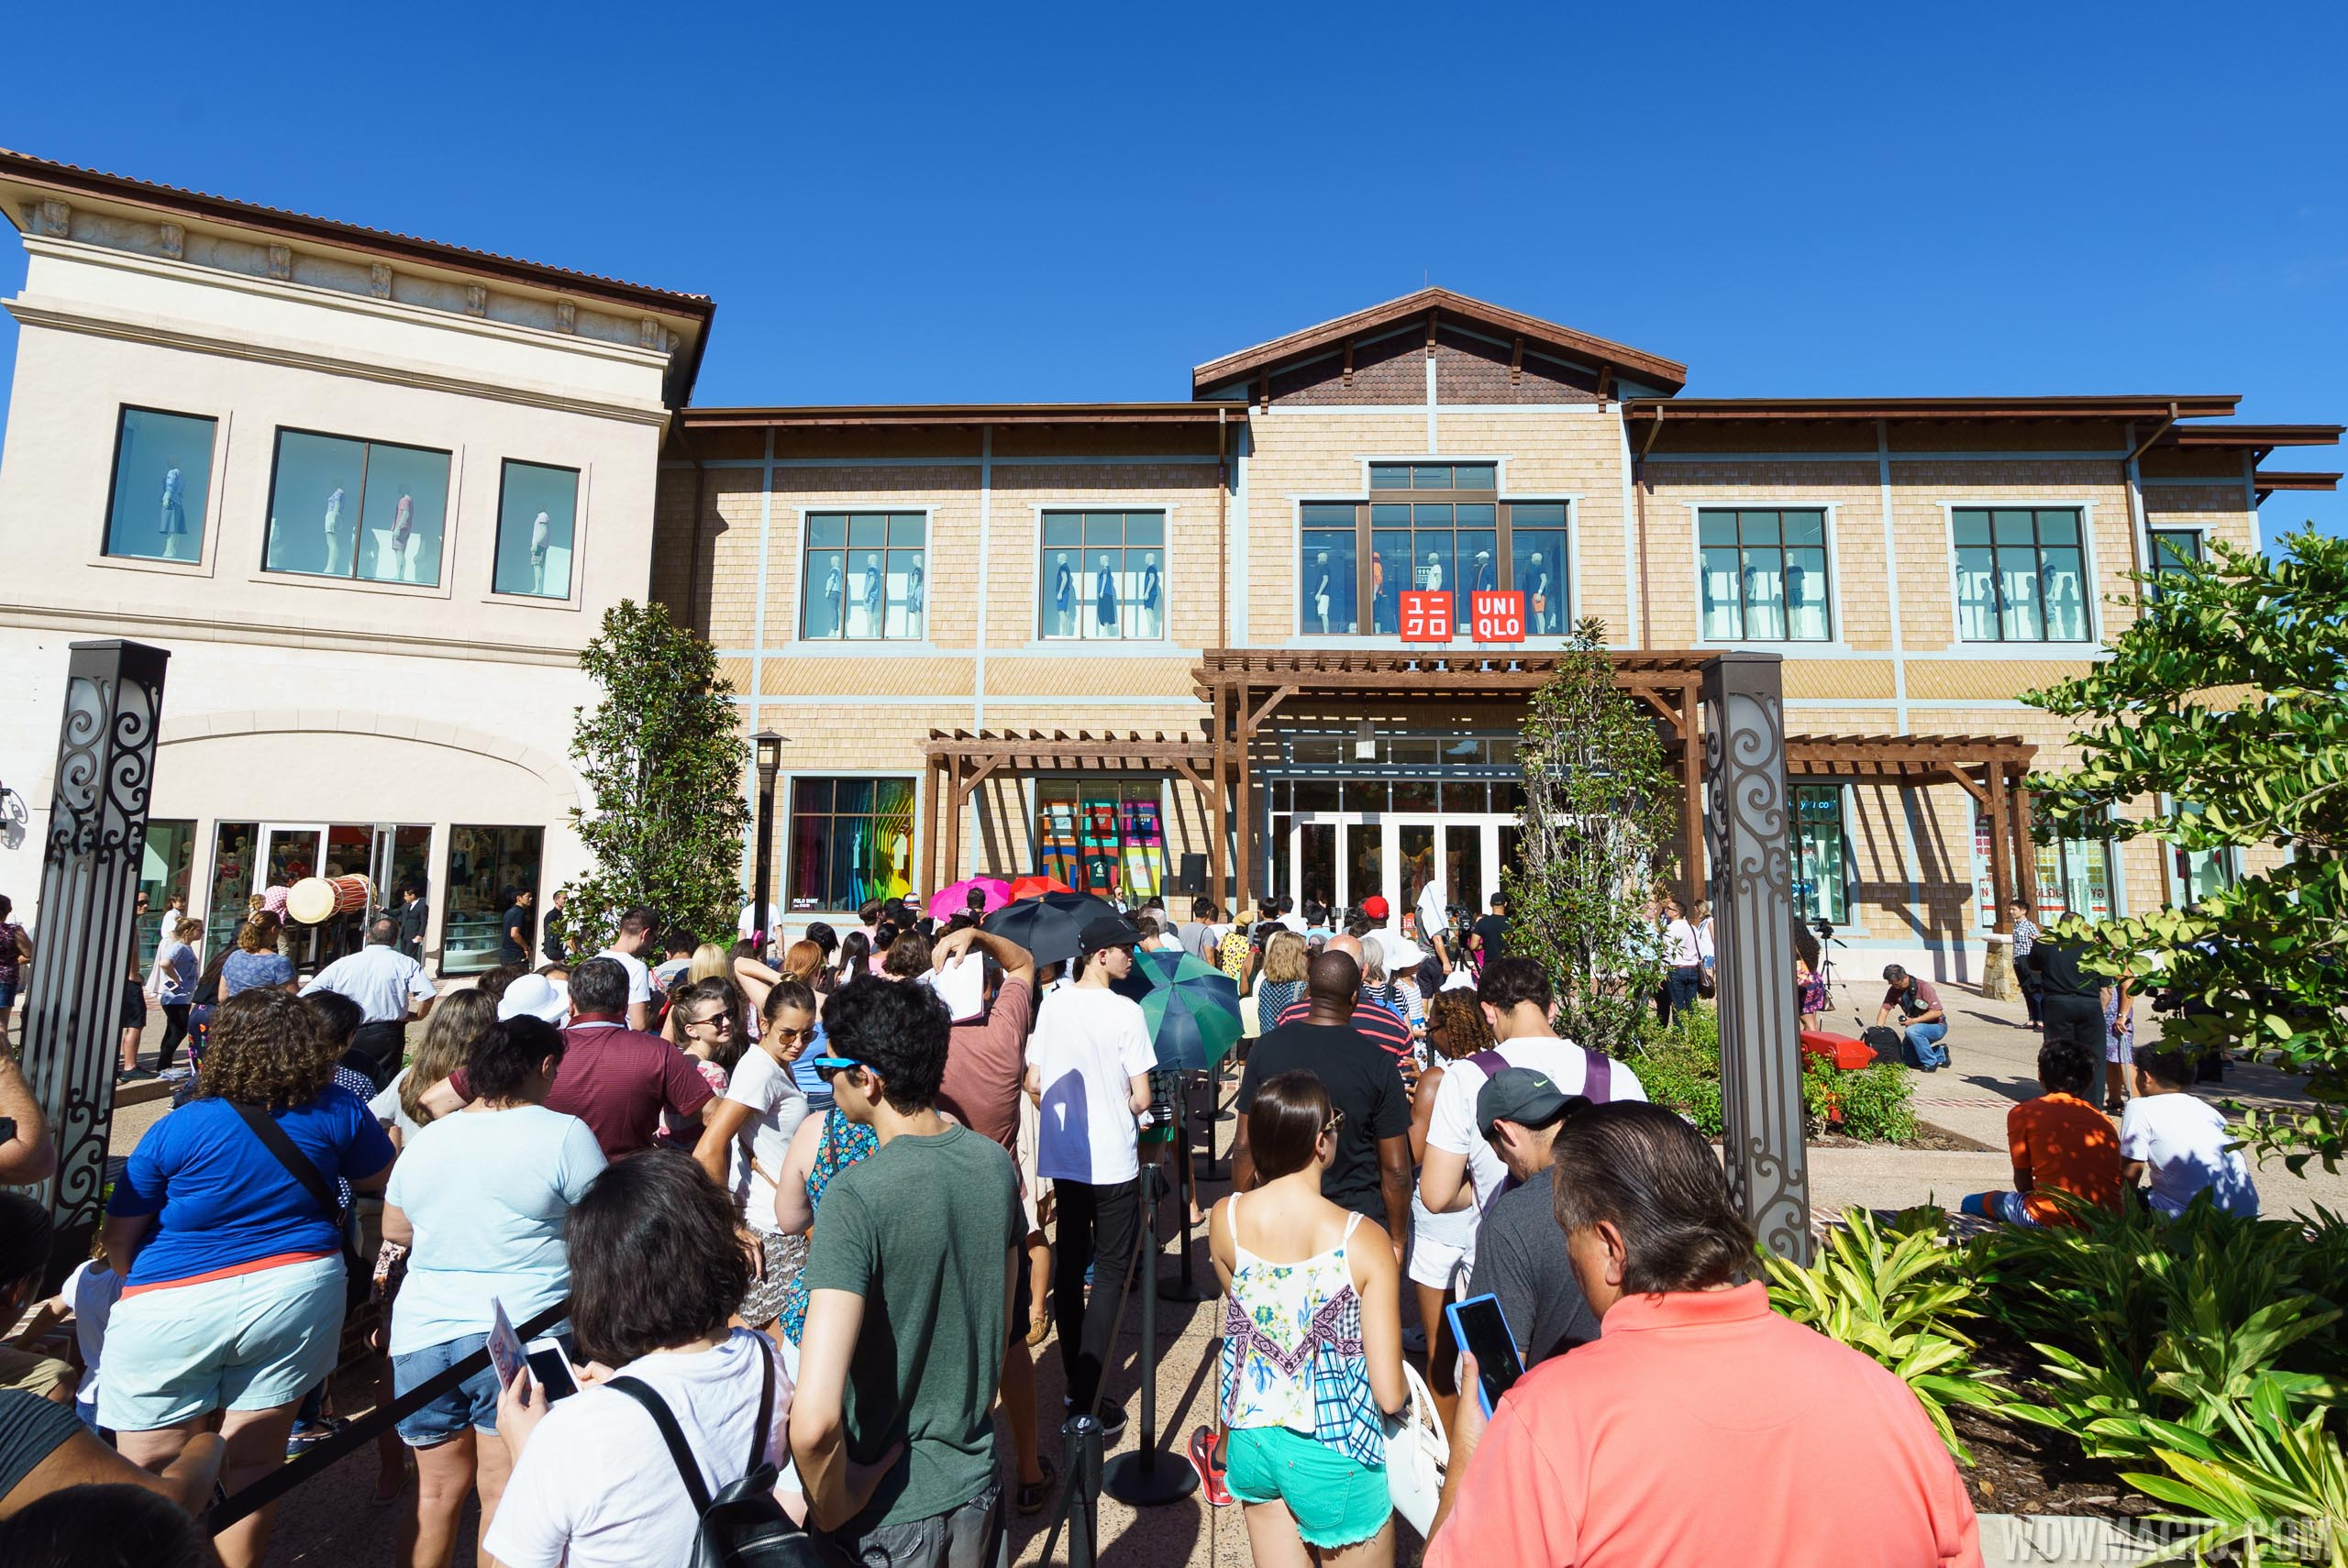 Crowds gather for the opening of UNIQLO at Disney Springs